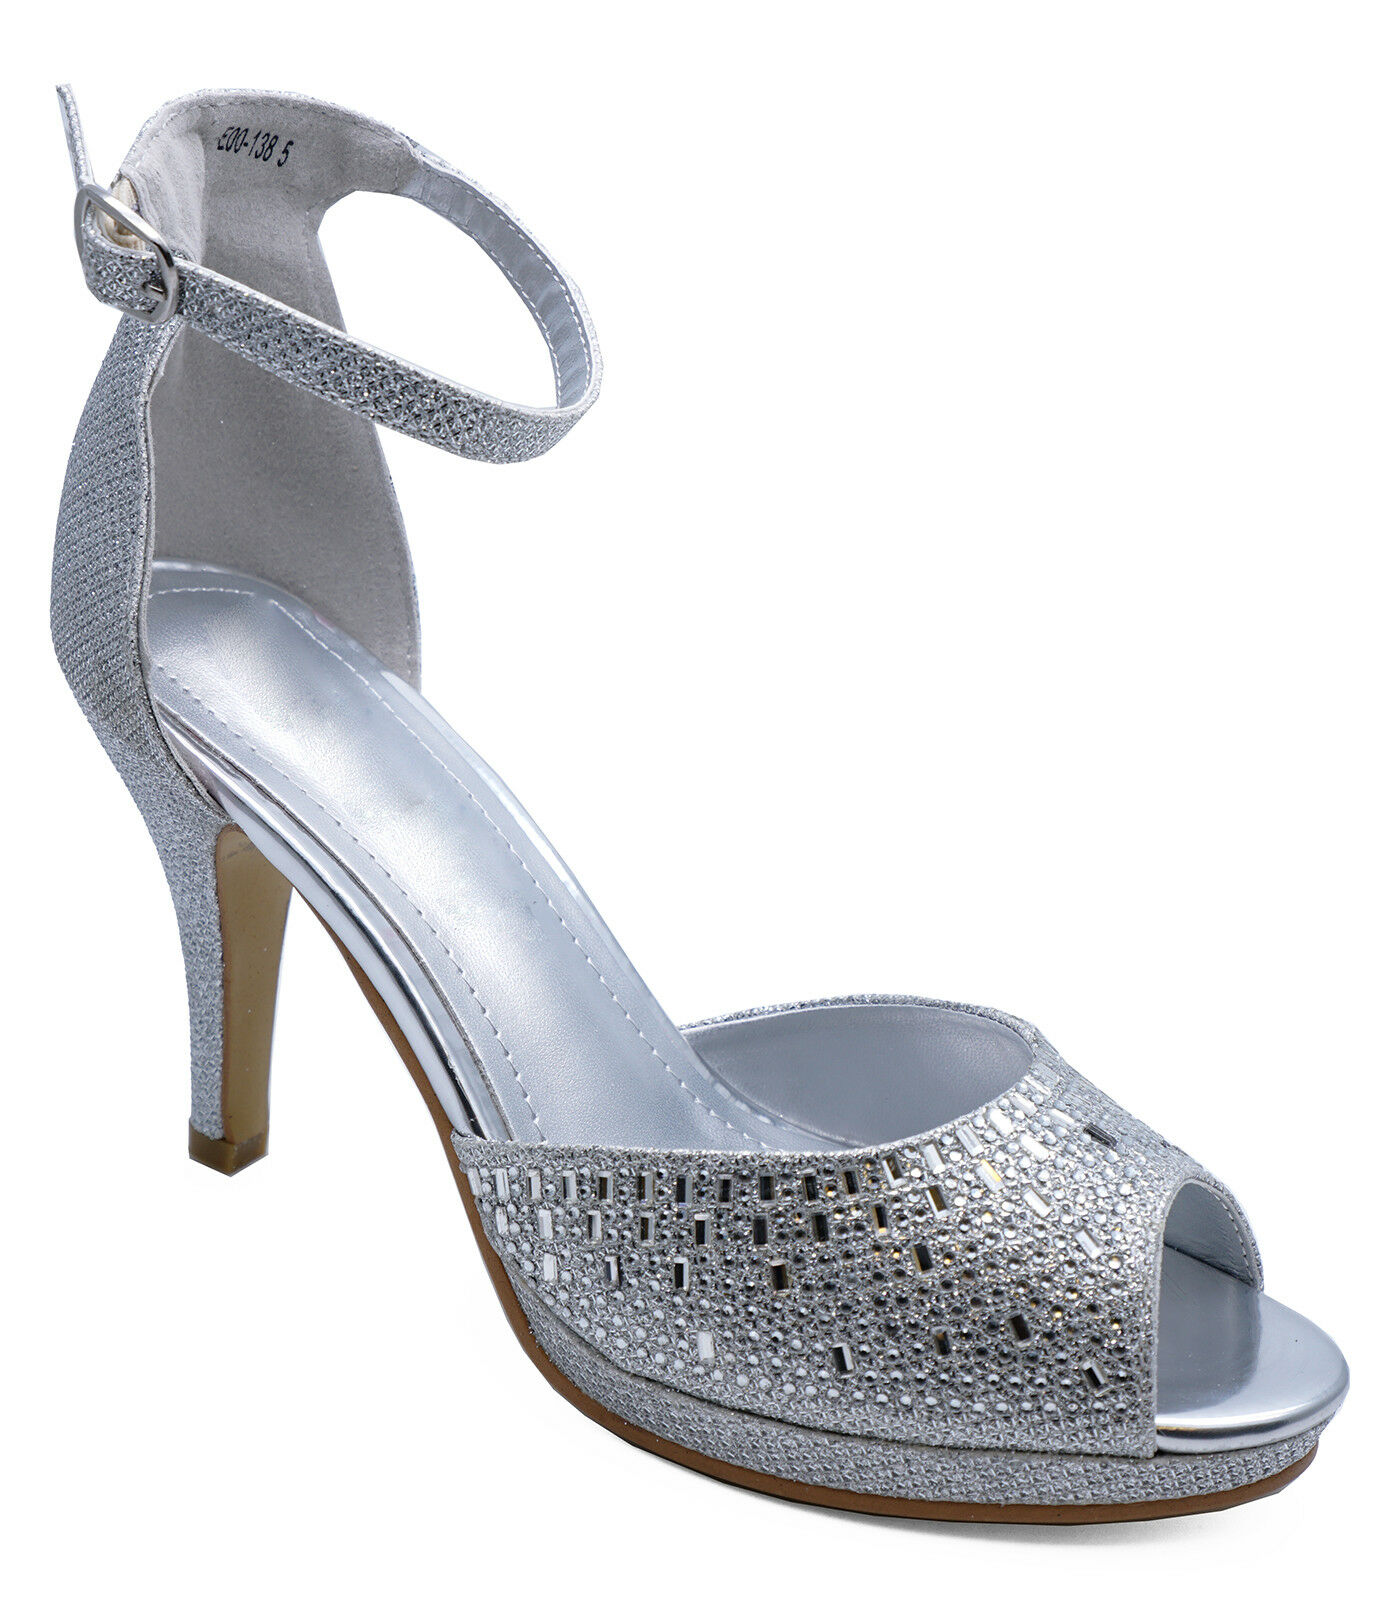 Silver Wedding Shoes.Details About Womens Silver Bridesmaid Bridal Party Evening Wedding Sandals Shoes Sizes 3 8